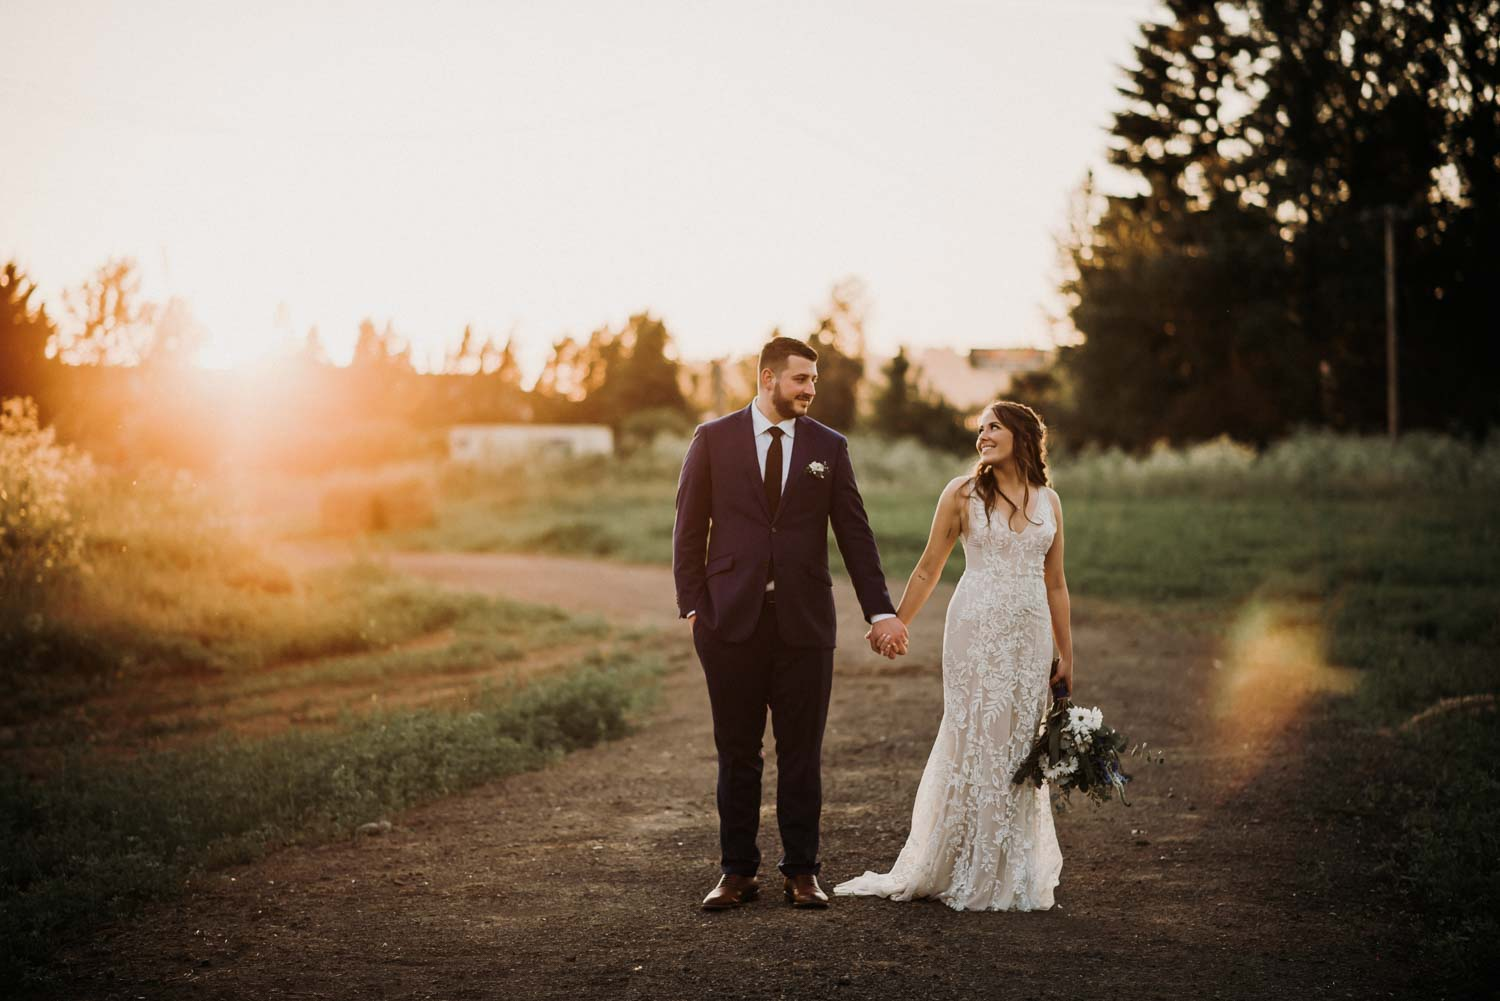 Golden hour bride and groom portrait holding hands taken in a field outside of the troutdale house by the Sandy river in Portland Oregon.